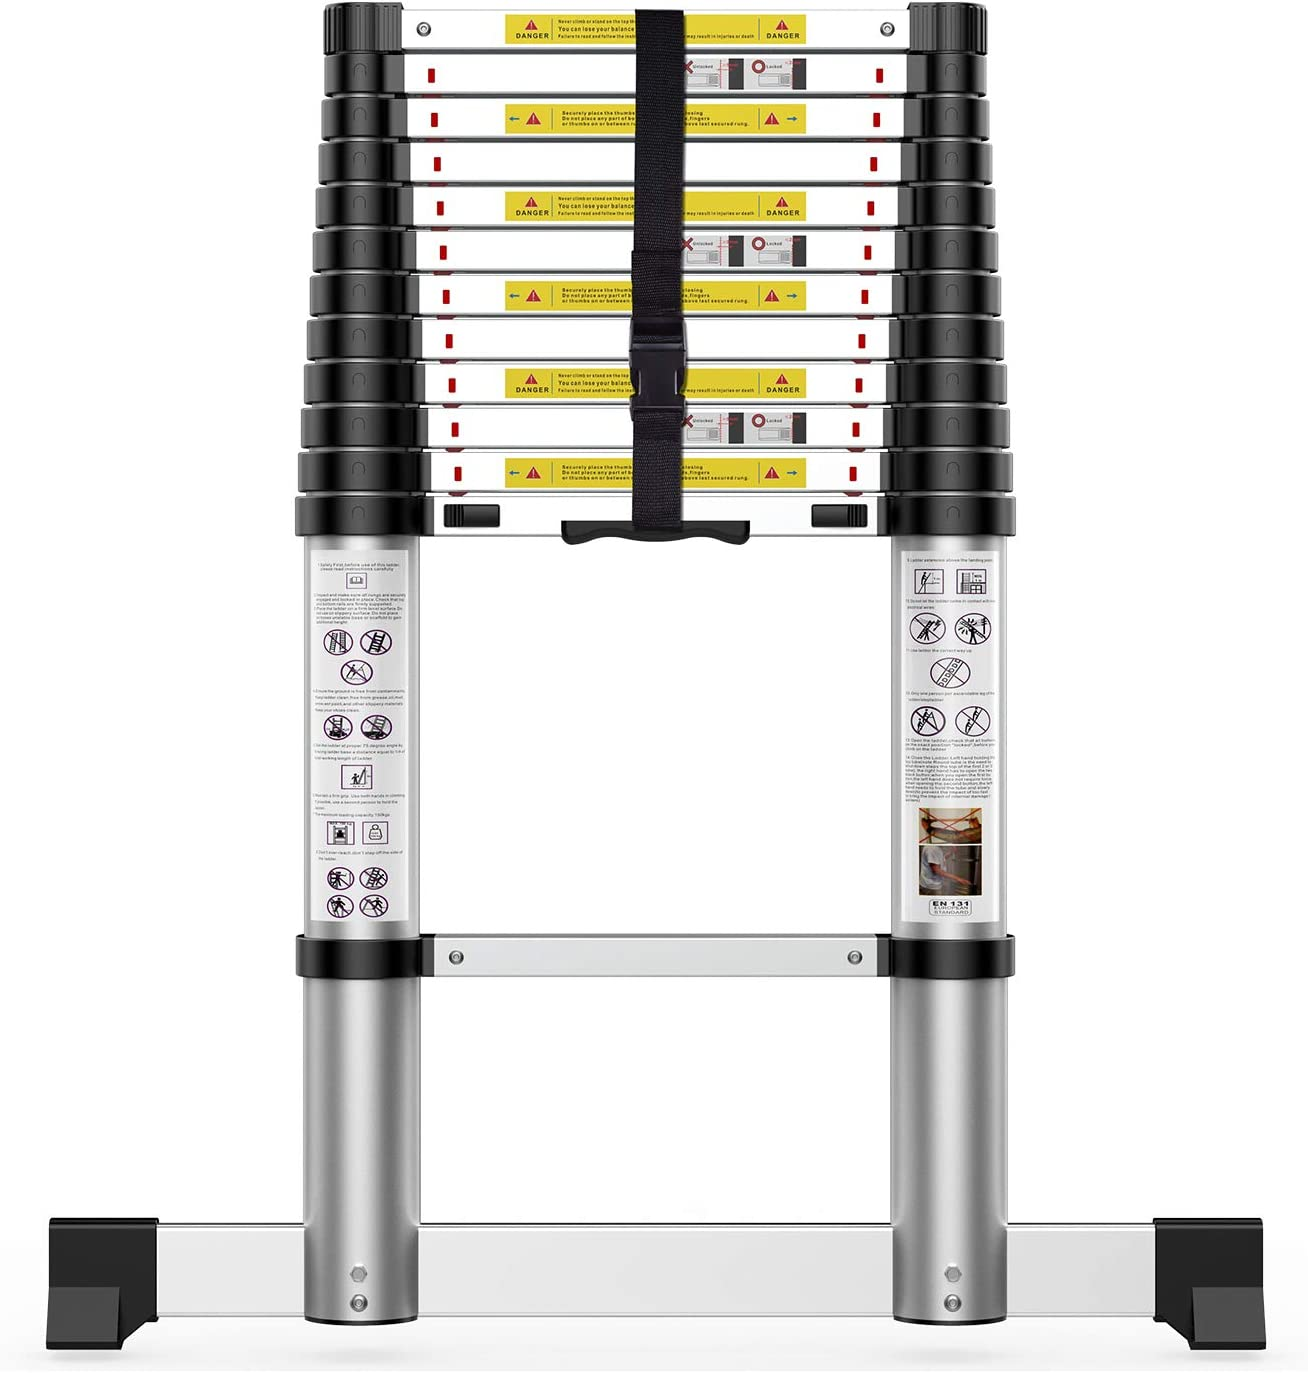 Telescoping Extension Ladder 12.5FT,Newly Aluminum Telescopic Ladder with Slow Down Design for Commercial or Home Use